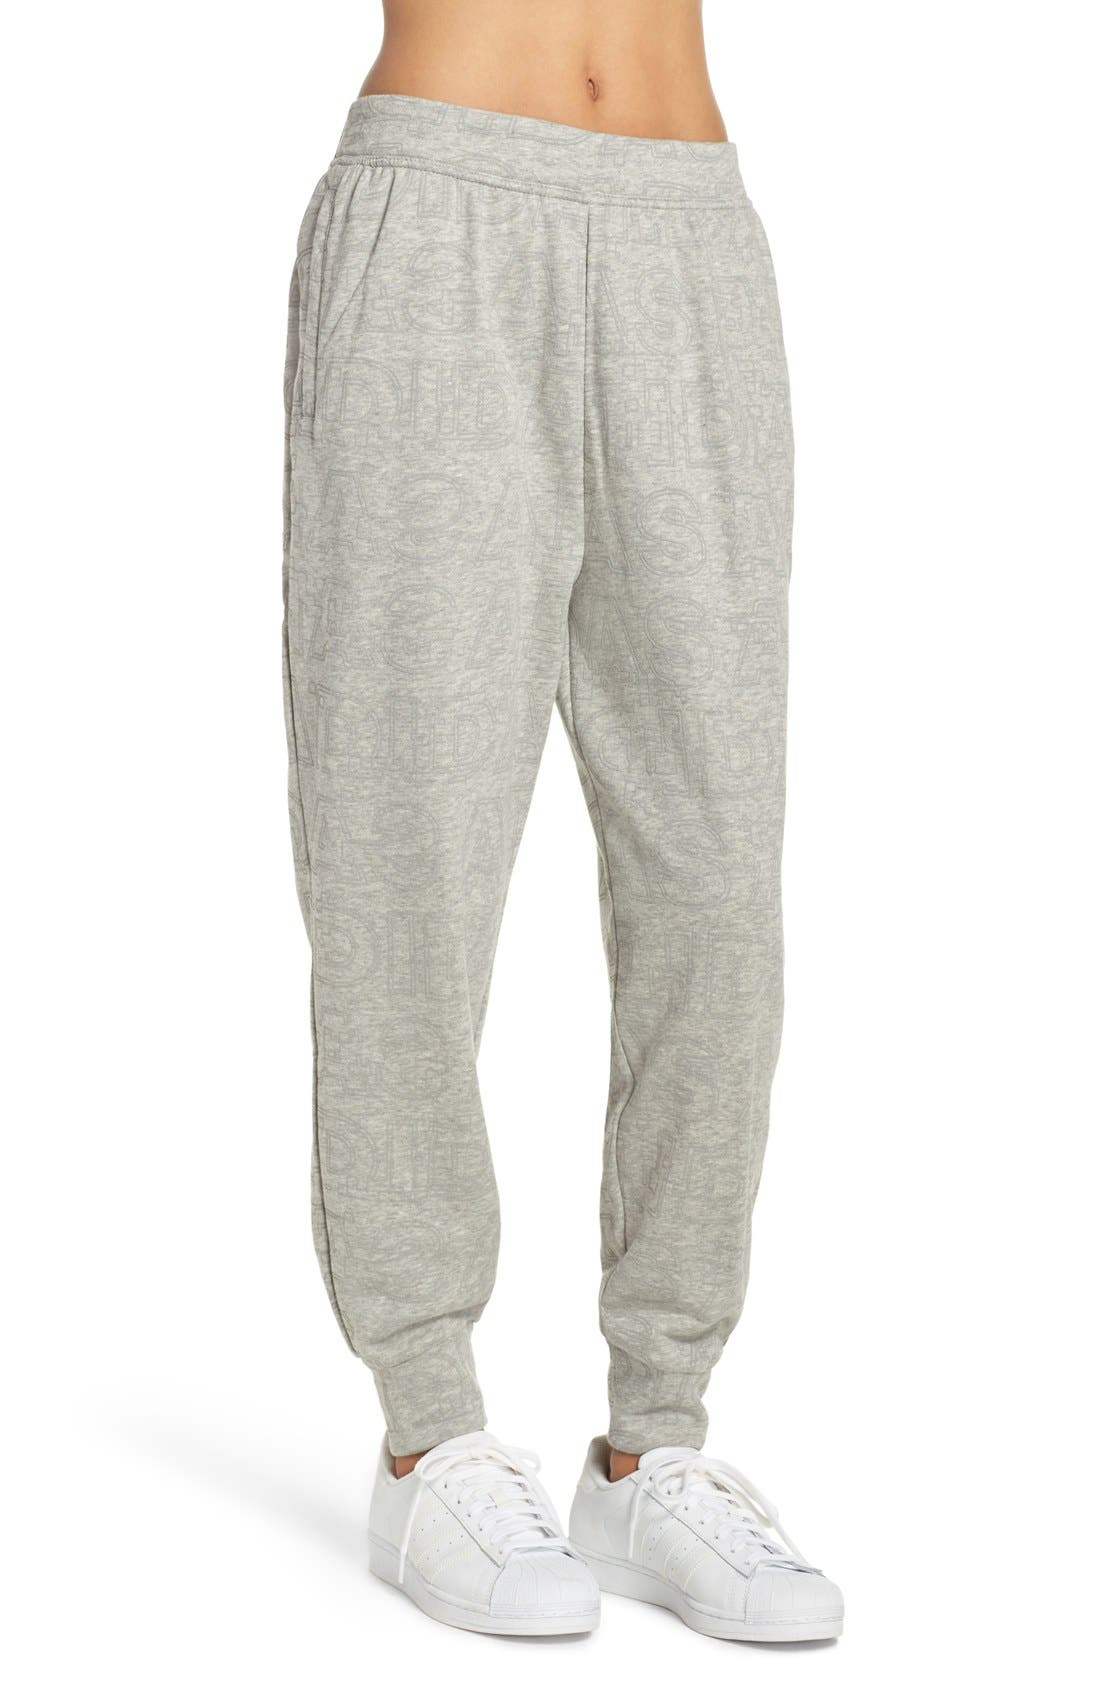 ADIDAS,                             Boyfriend Lounge Pants,                             Alternate thumbnail 3, color,                             035